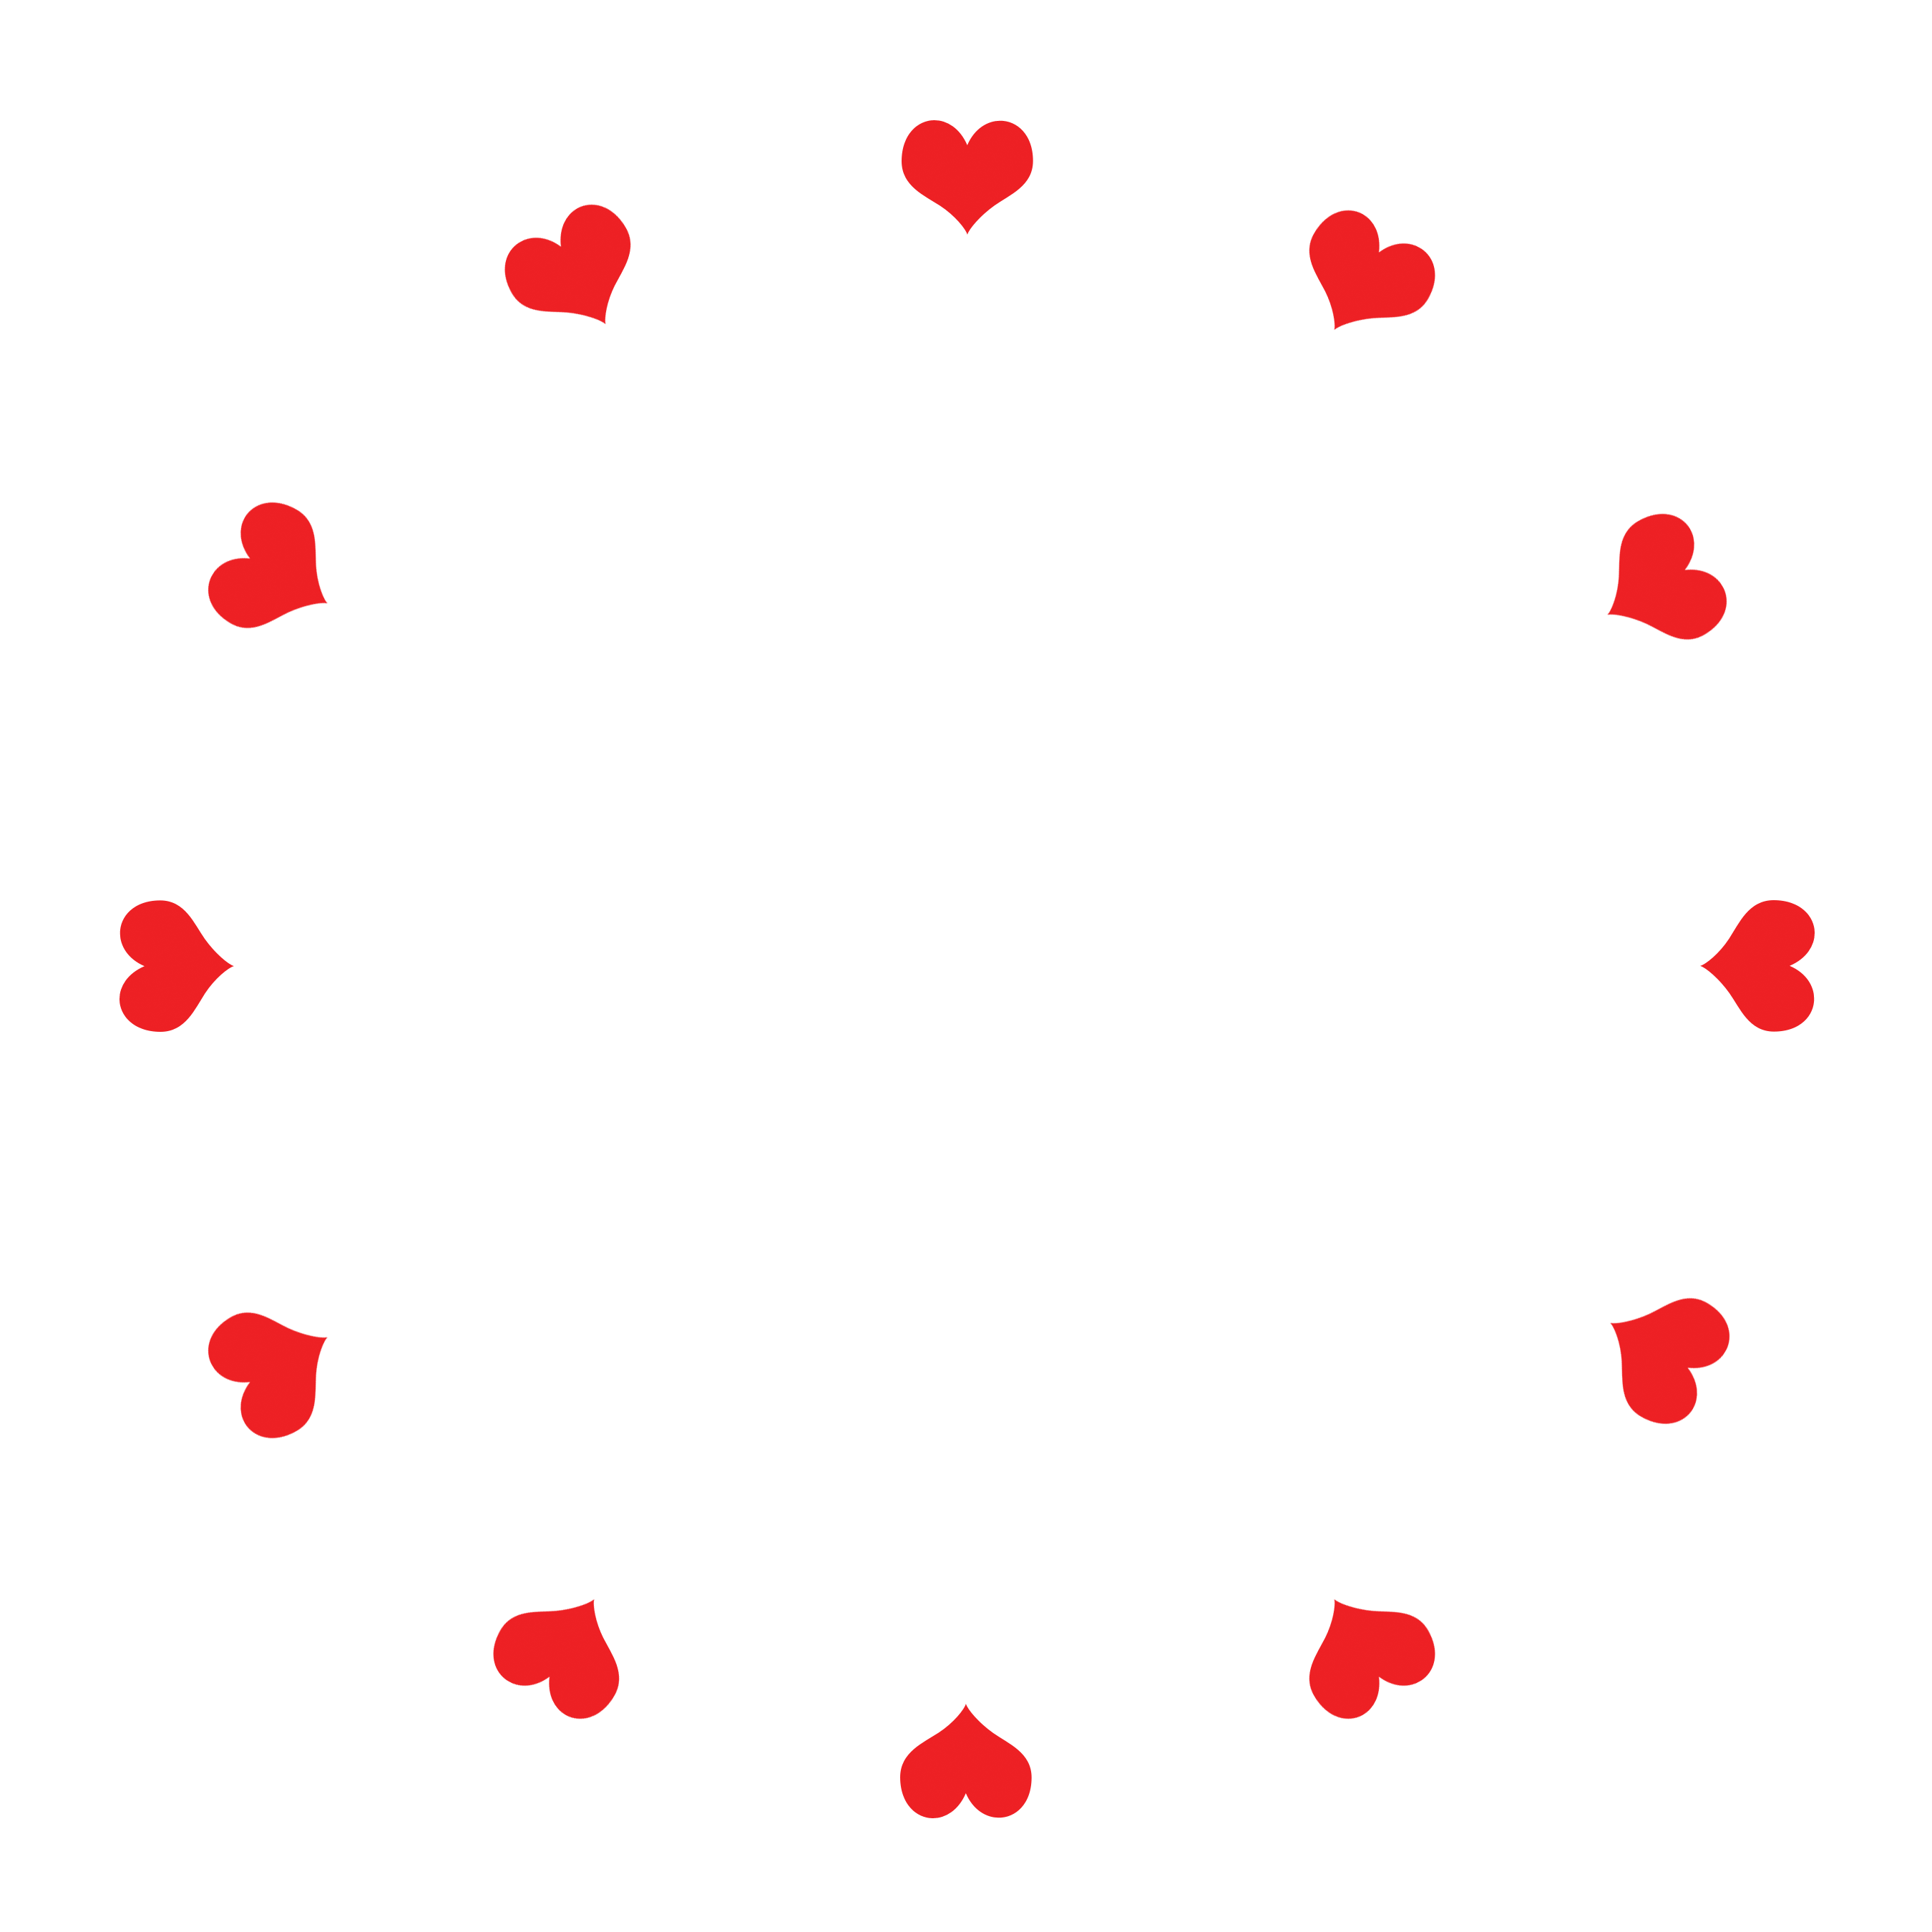 Heart clock clipart jpg library library clock-face-hearts-red.png (2700×2700) | Clock | Pinterest | Clocks jpg library library